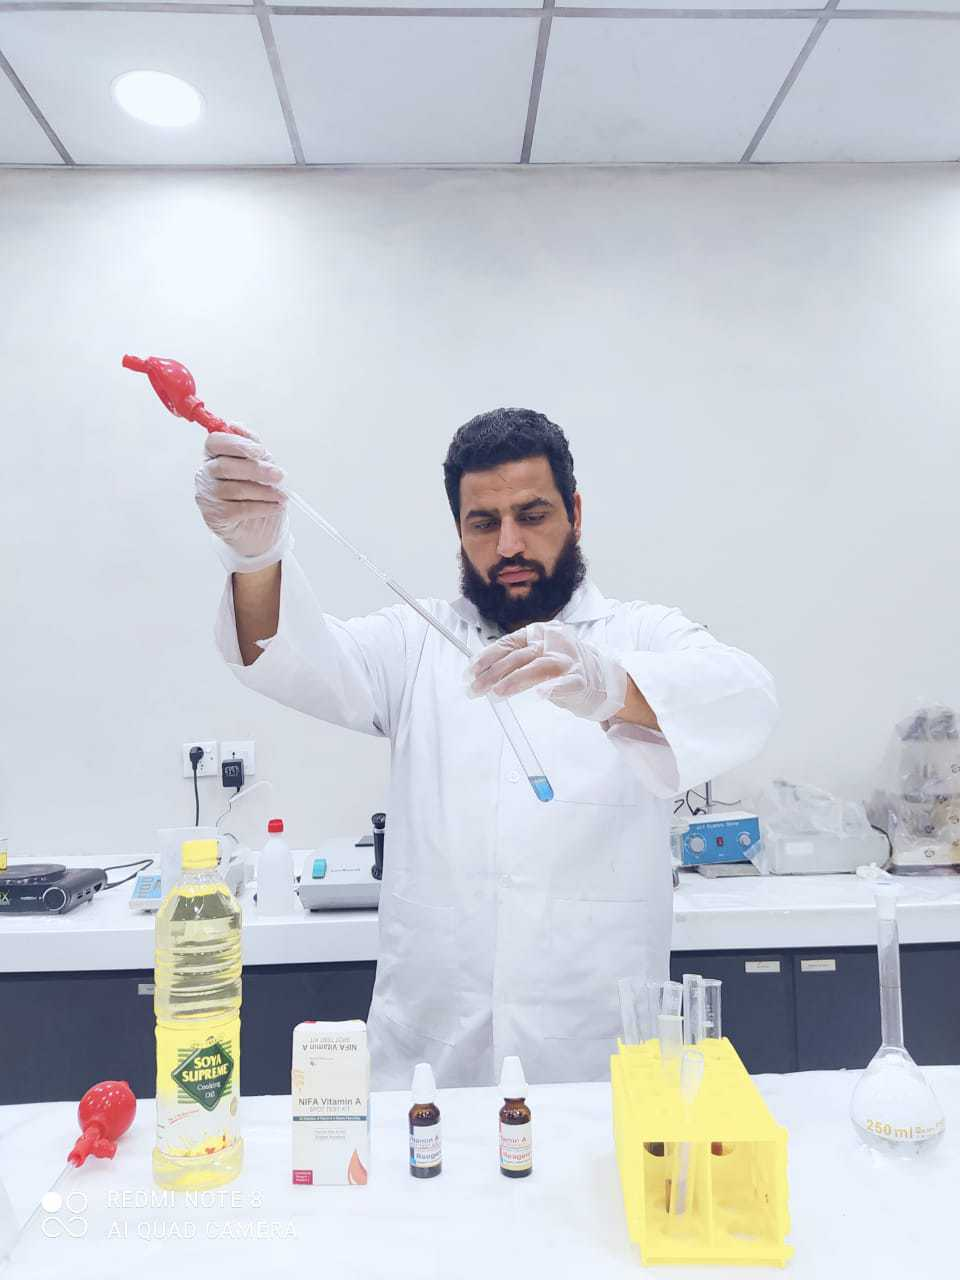 Man in lab coat conducting a vitamin test to check adequacy of fortification in oil